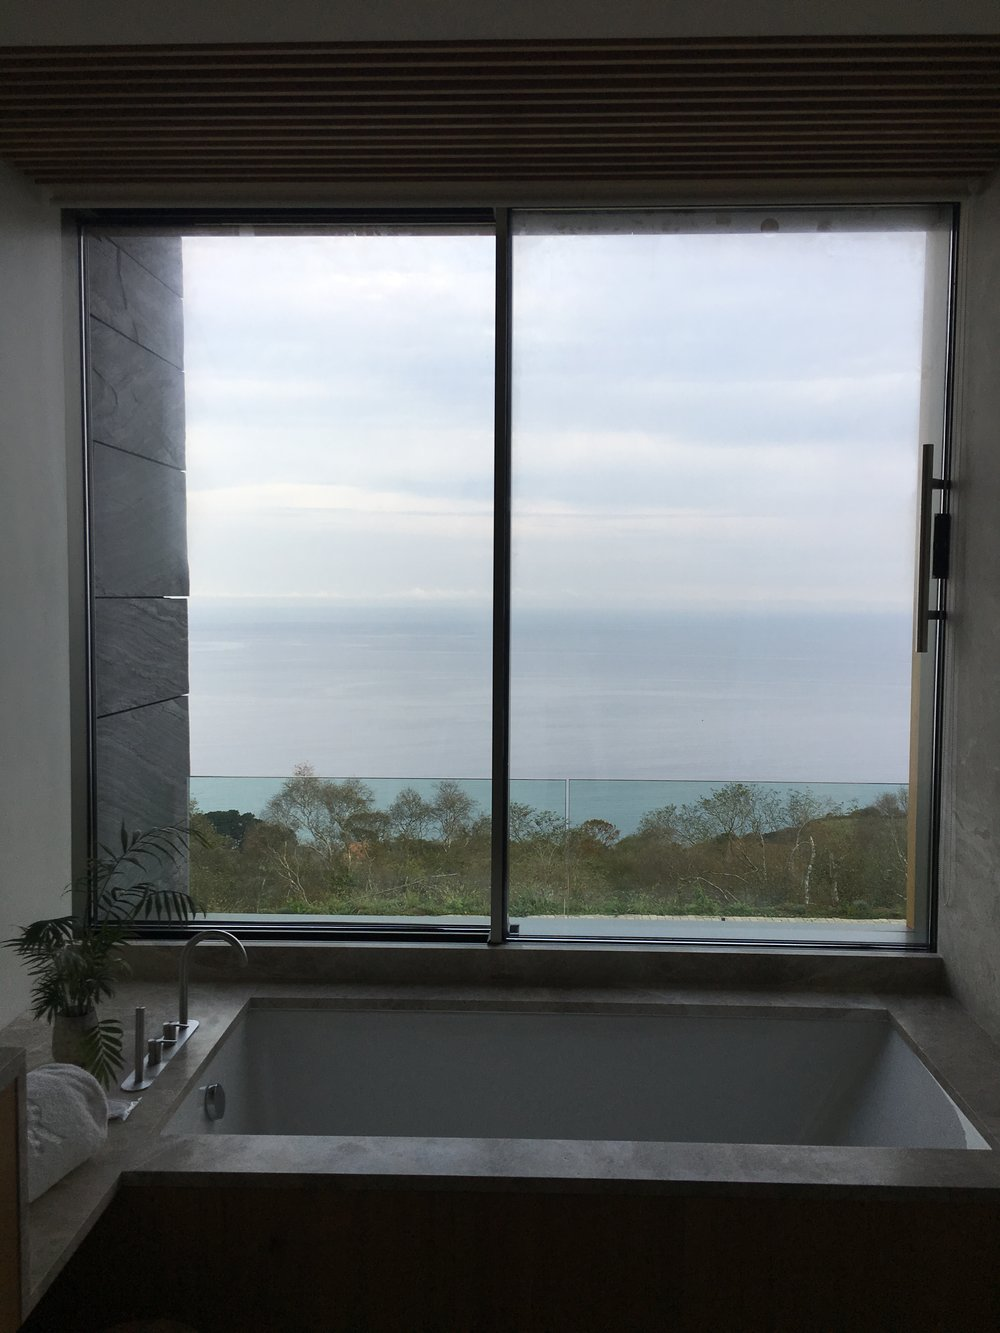 This is the bath of my dreams - wide open to nature and the sea below. I watched the sun set dreaming of the next spaces I'd create while soaking away....